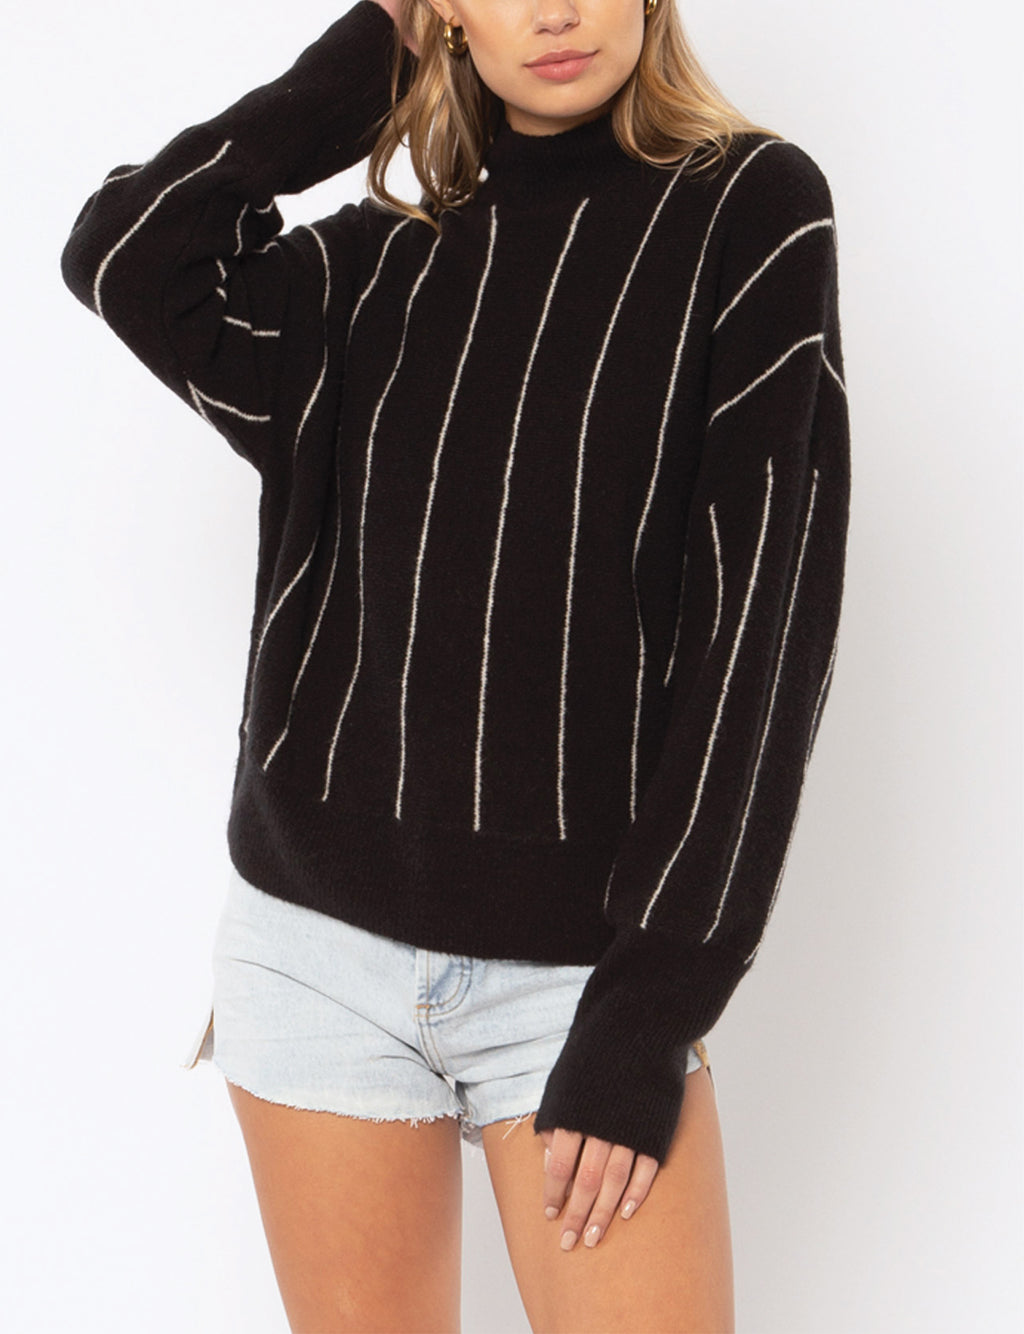 Amuse Society Aline L/S Knit Sweater in Black/Cream Stripe